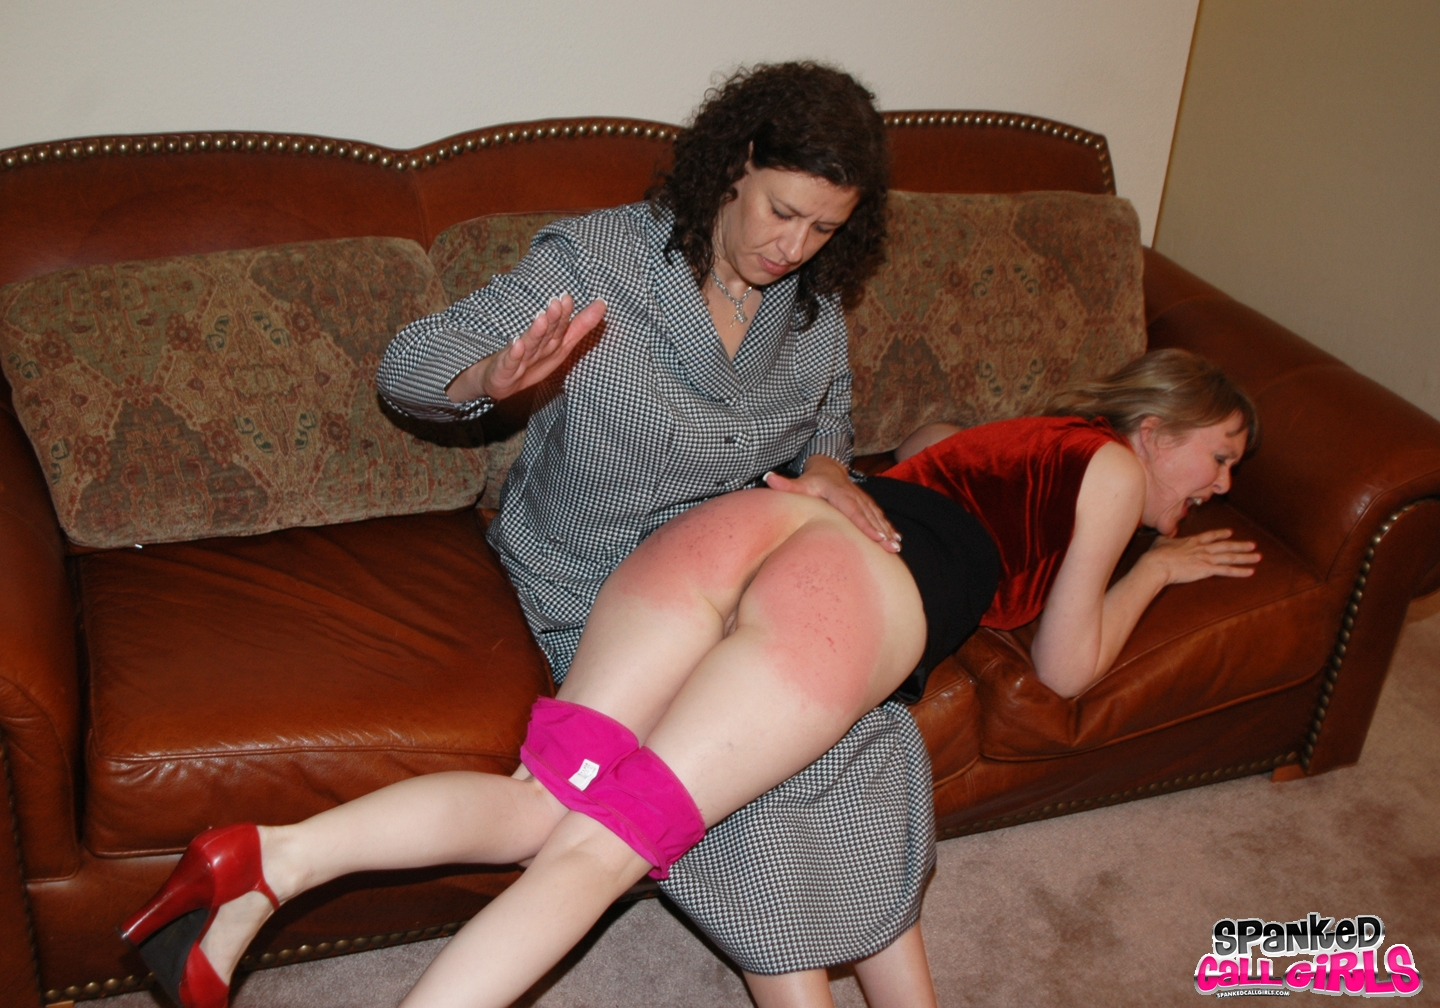 Spanking girls daily motion